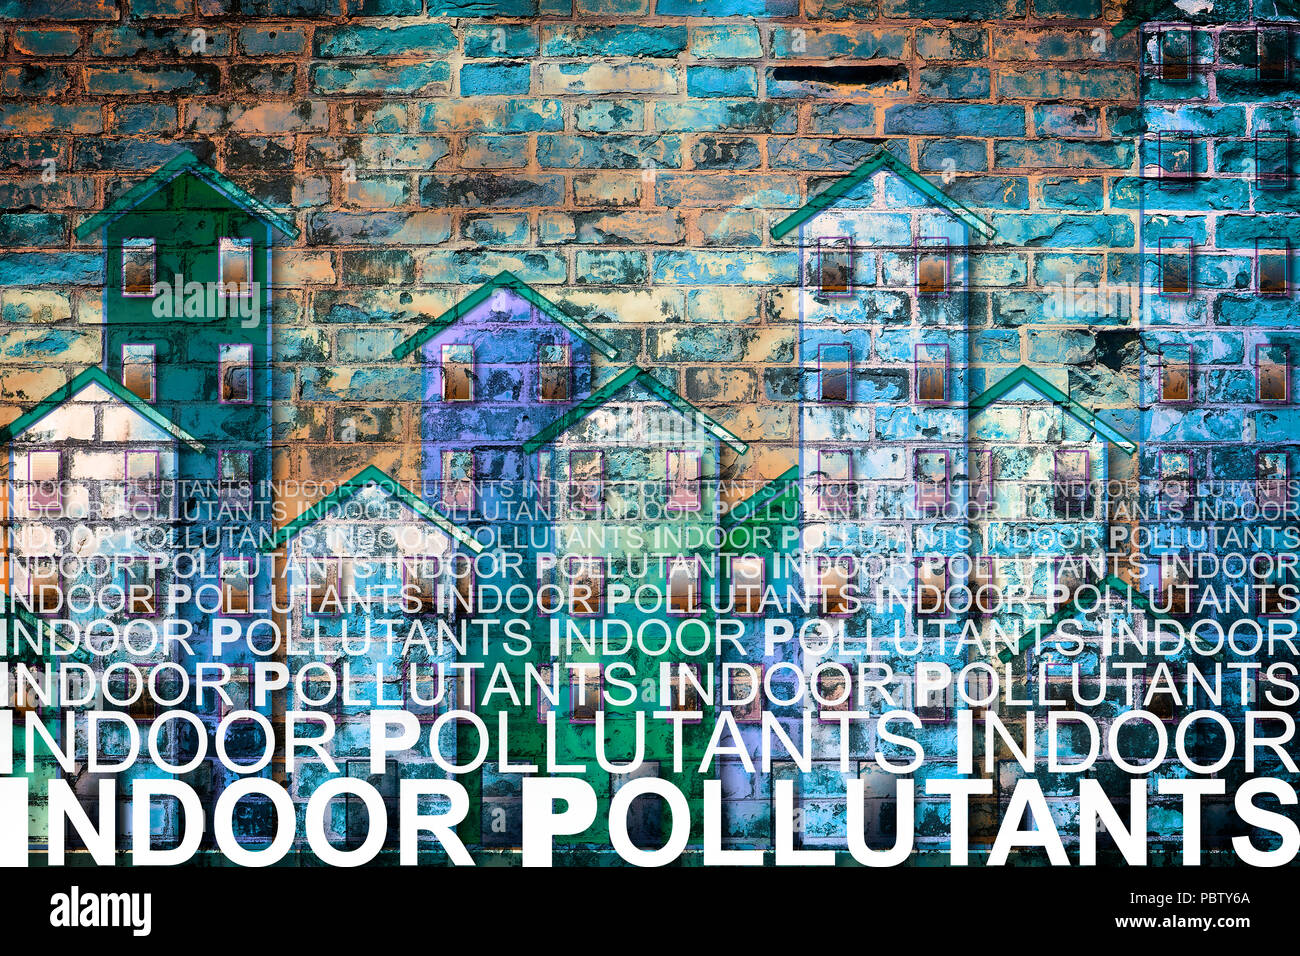 Indoor air pollutants against a buildings background - concetp image with copy space - Stock Image